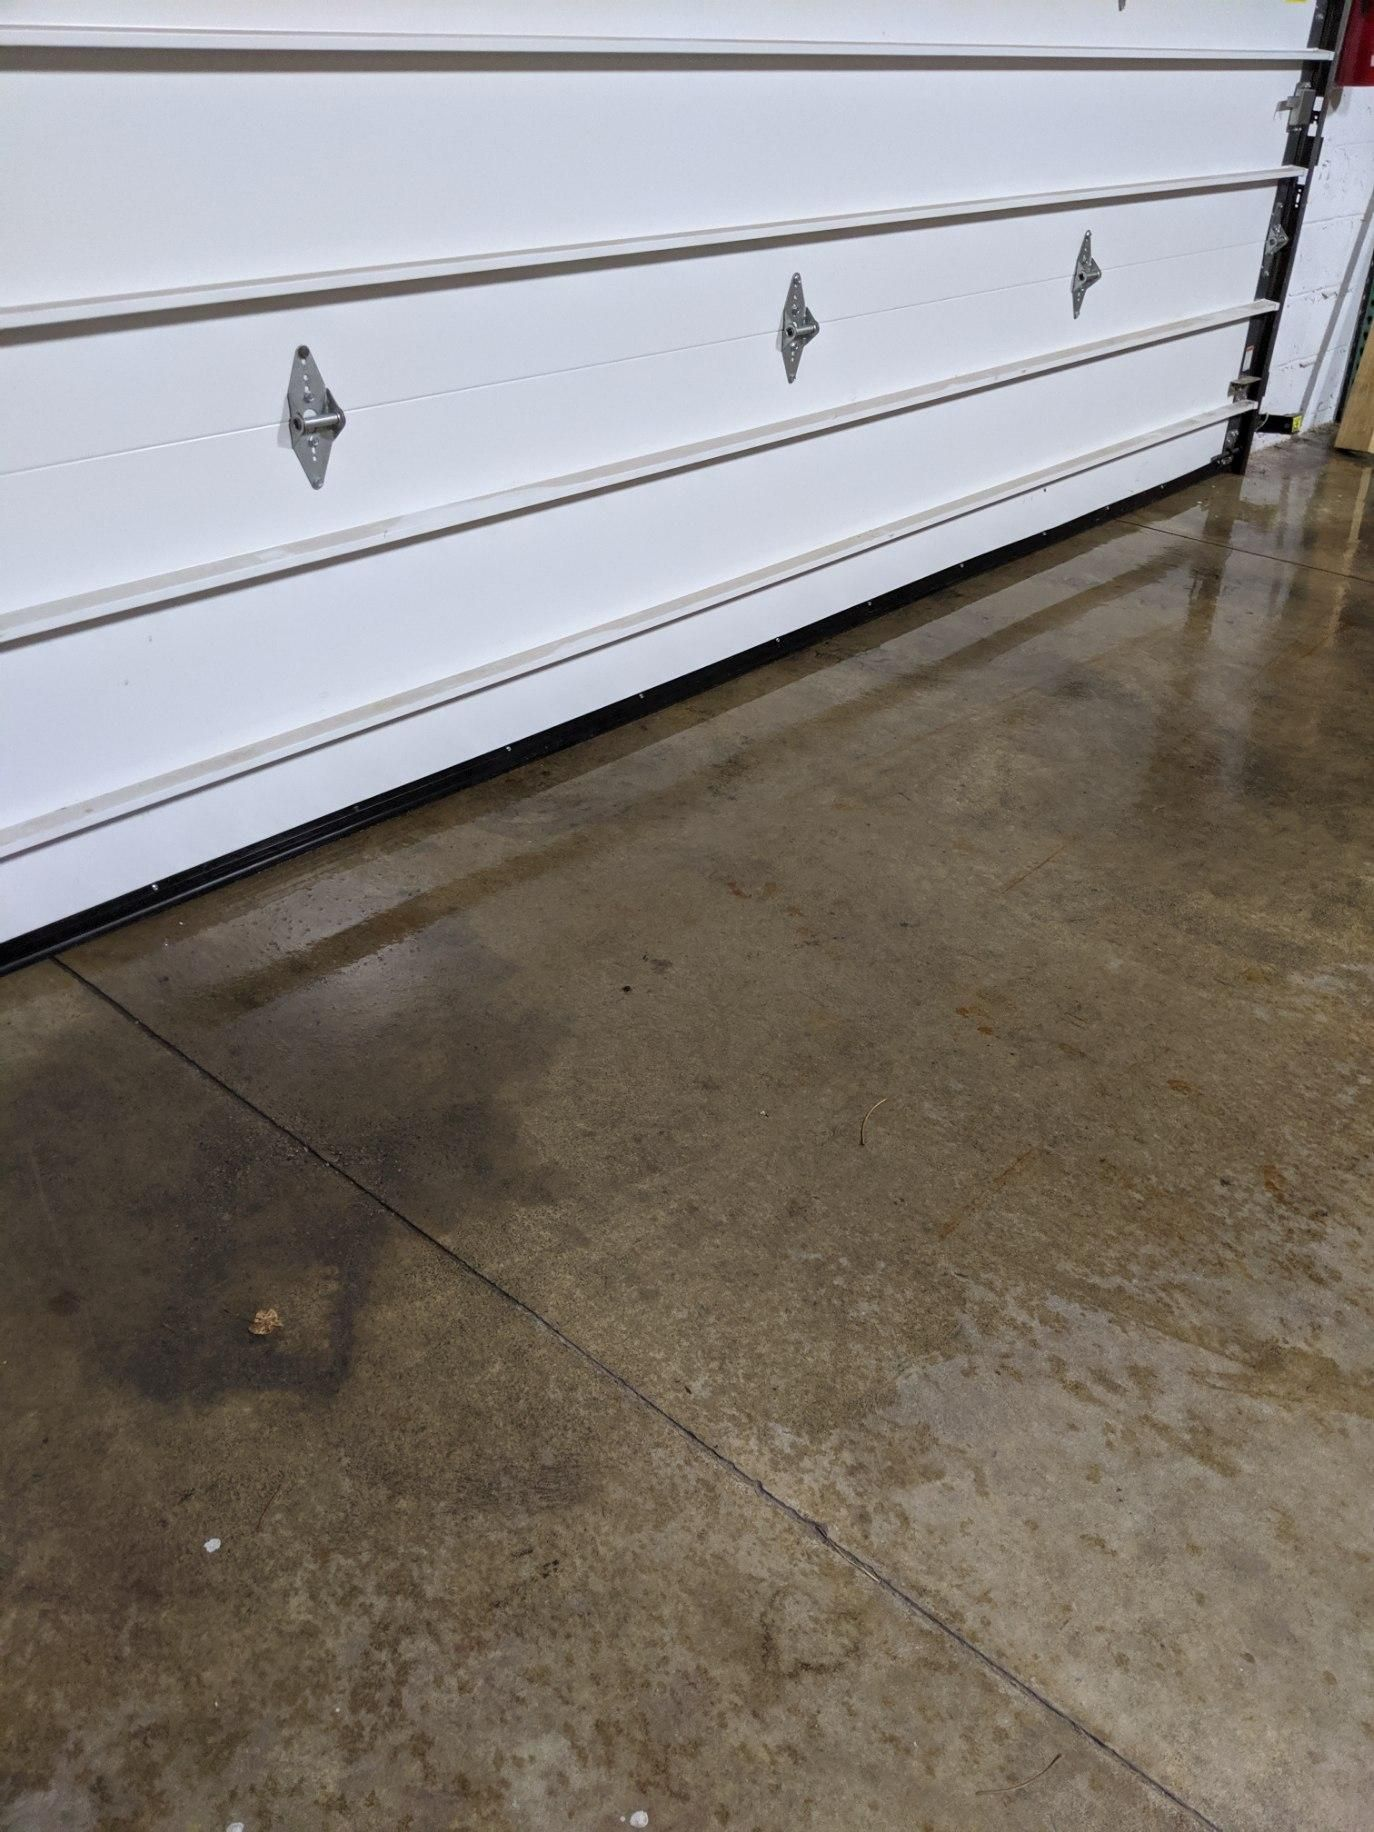 Trench Drains For Garage Entrances Trench Drain Driveway Drain Trench Drain Systems